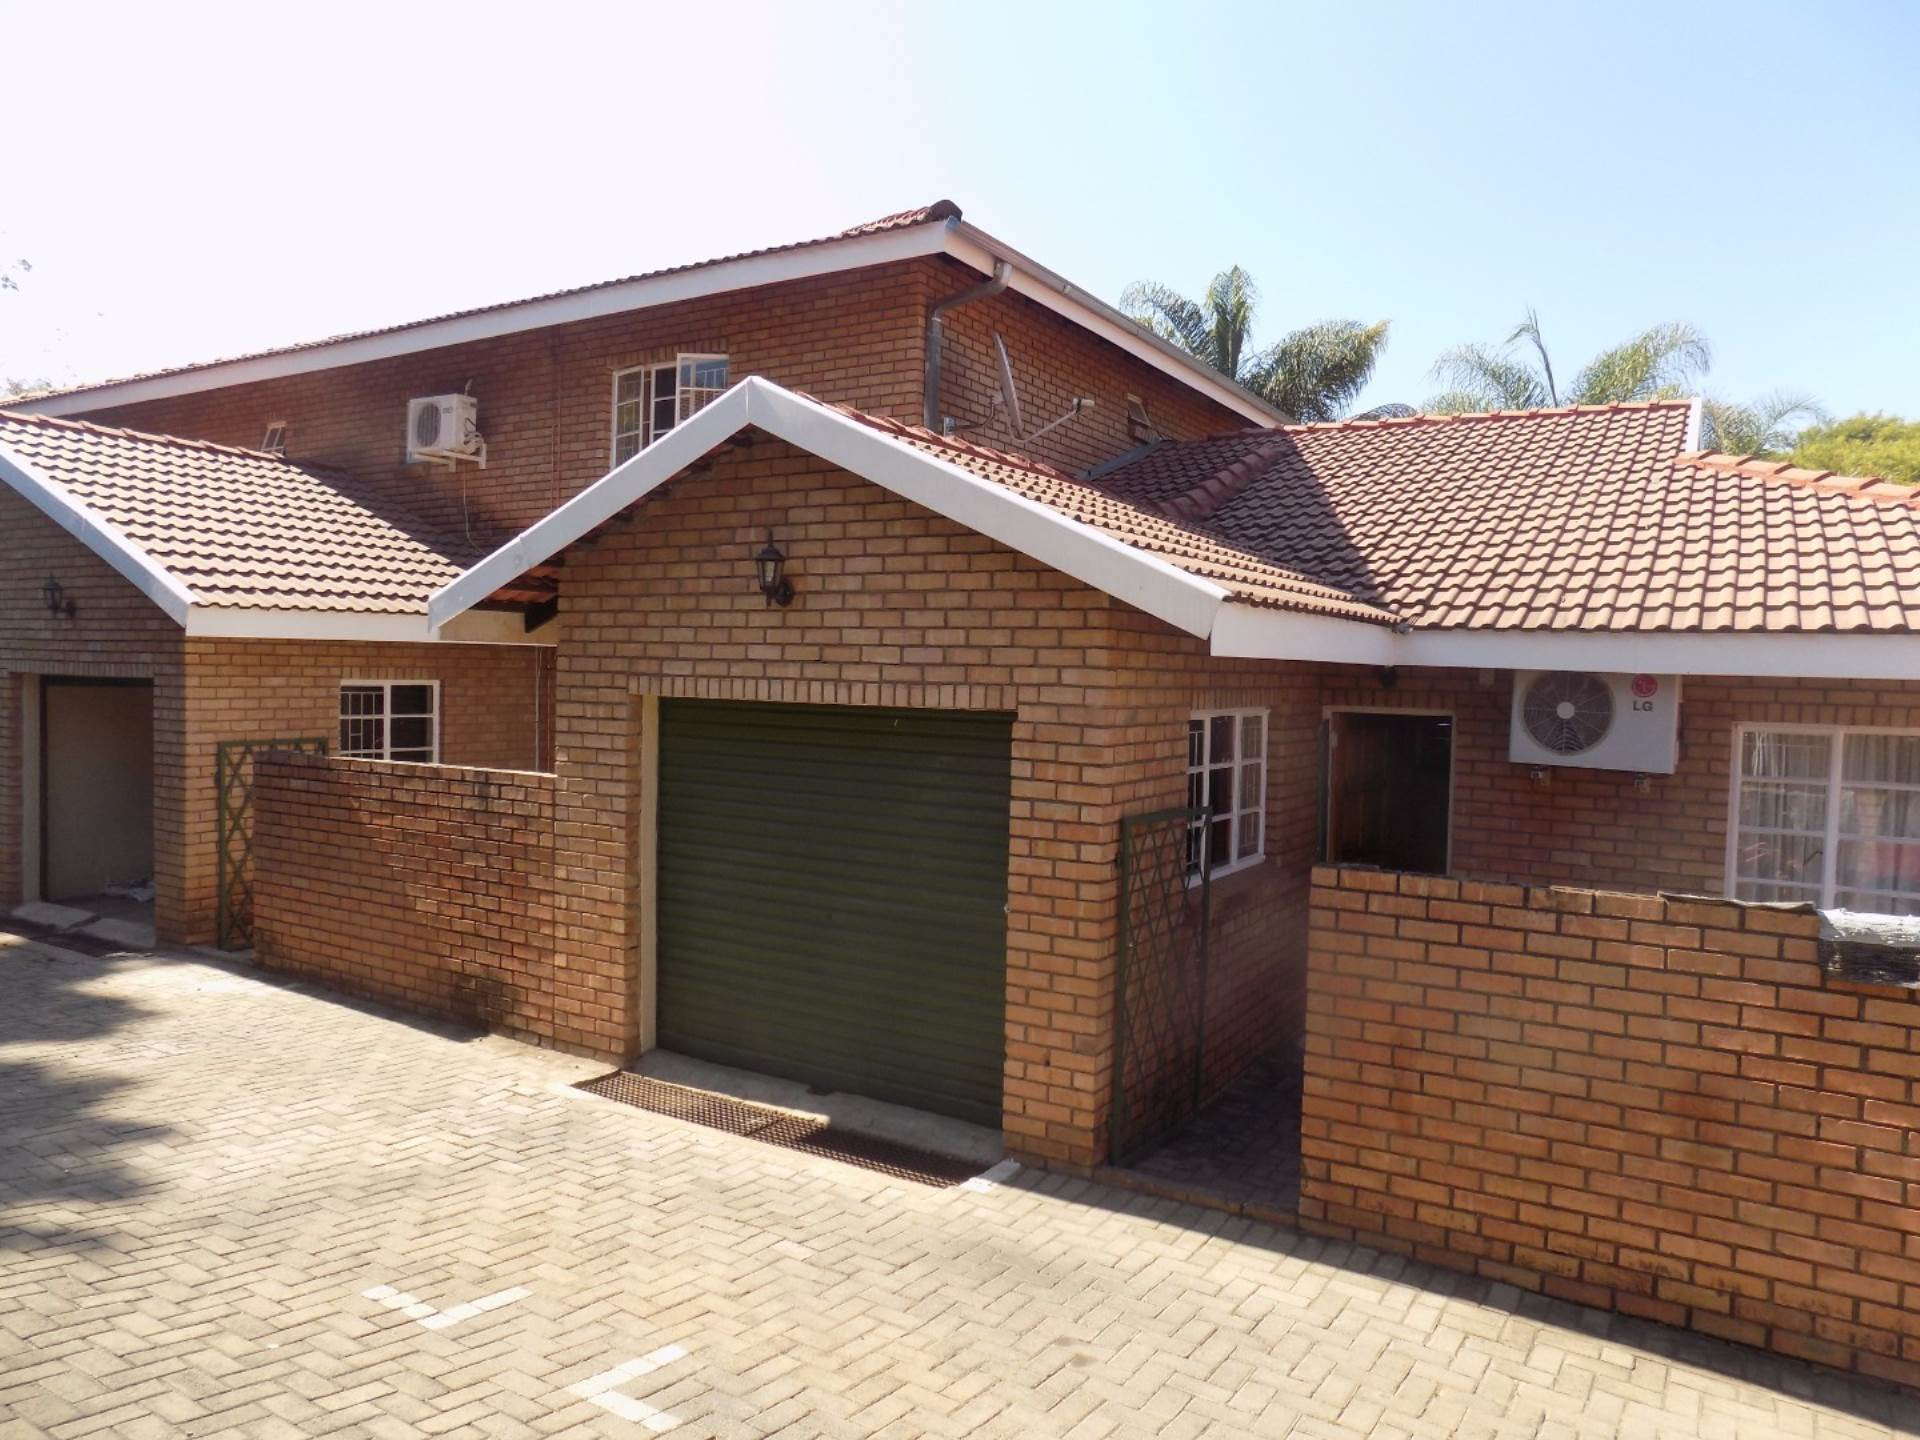 2 BedroomTownhouse For Sale In Arborpark